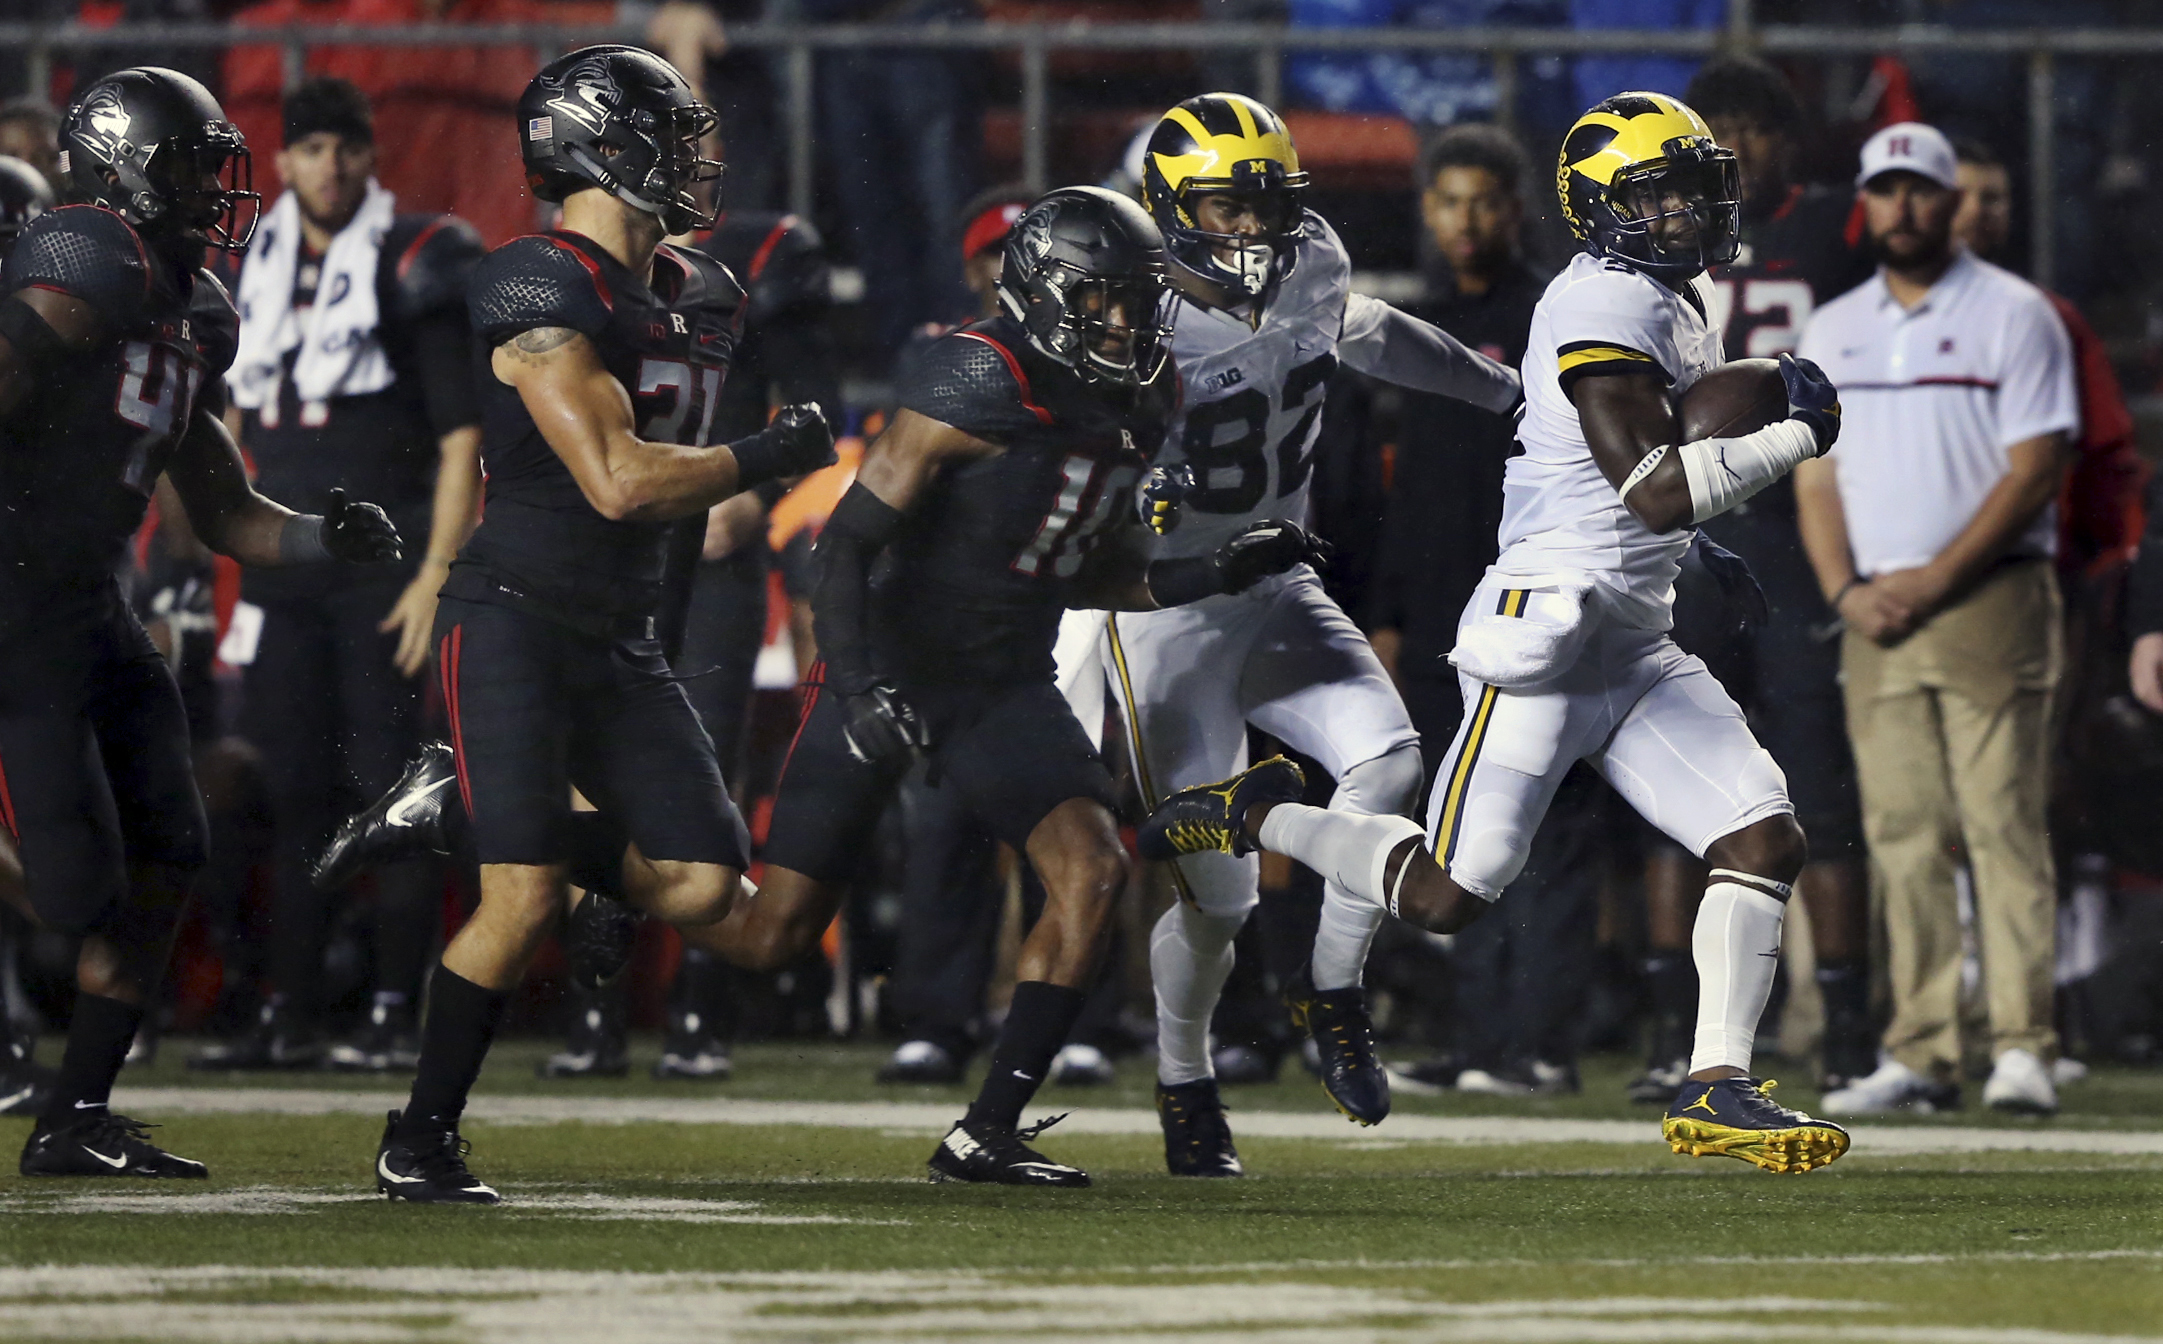 Michigan running back Jabrill Peppers (5) runs away from Rutgers defenders during the first half of an NCAA college football game Saturday, Oct. 8, 2016, in Piscataway, N.J. (AP Photo/Mel Evans)